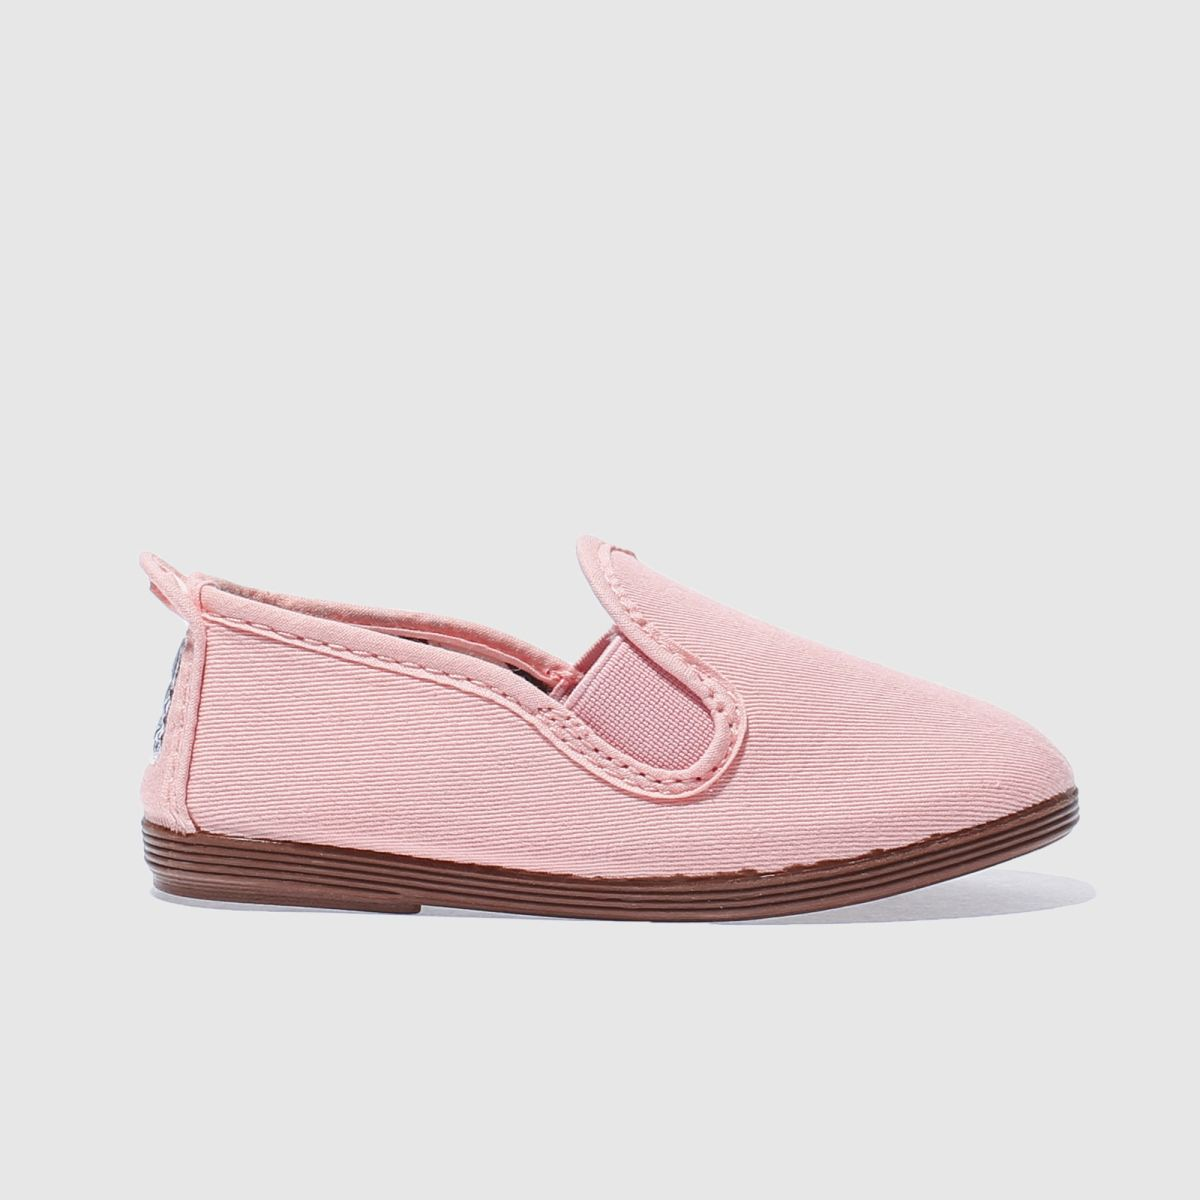 Flossy Flossy Pink Pamplona Girls Toddler Shoes